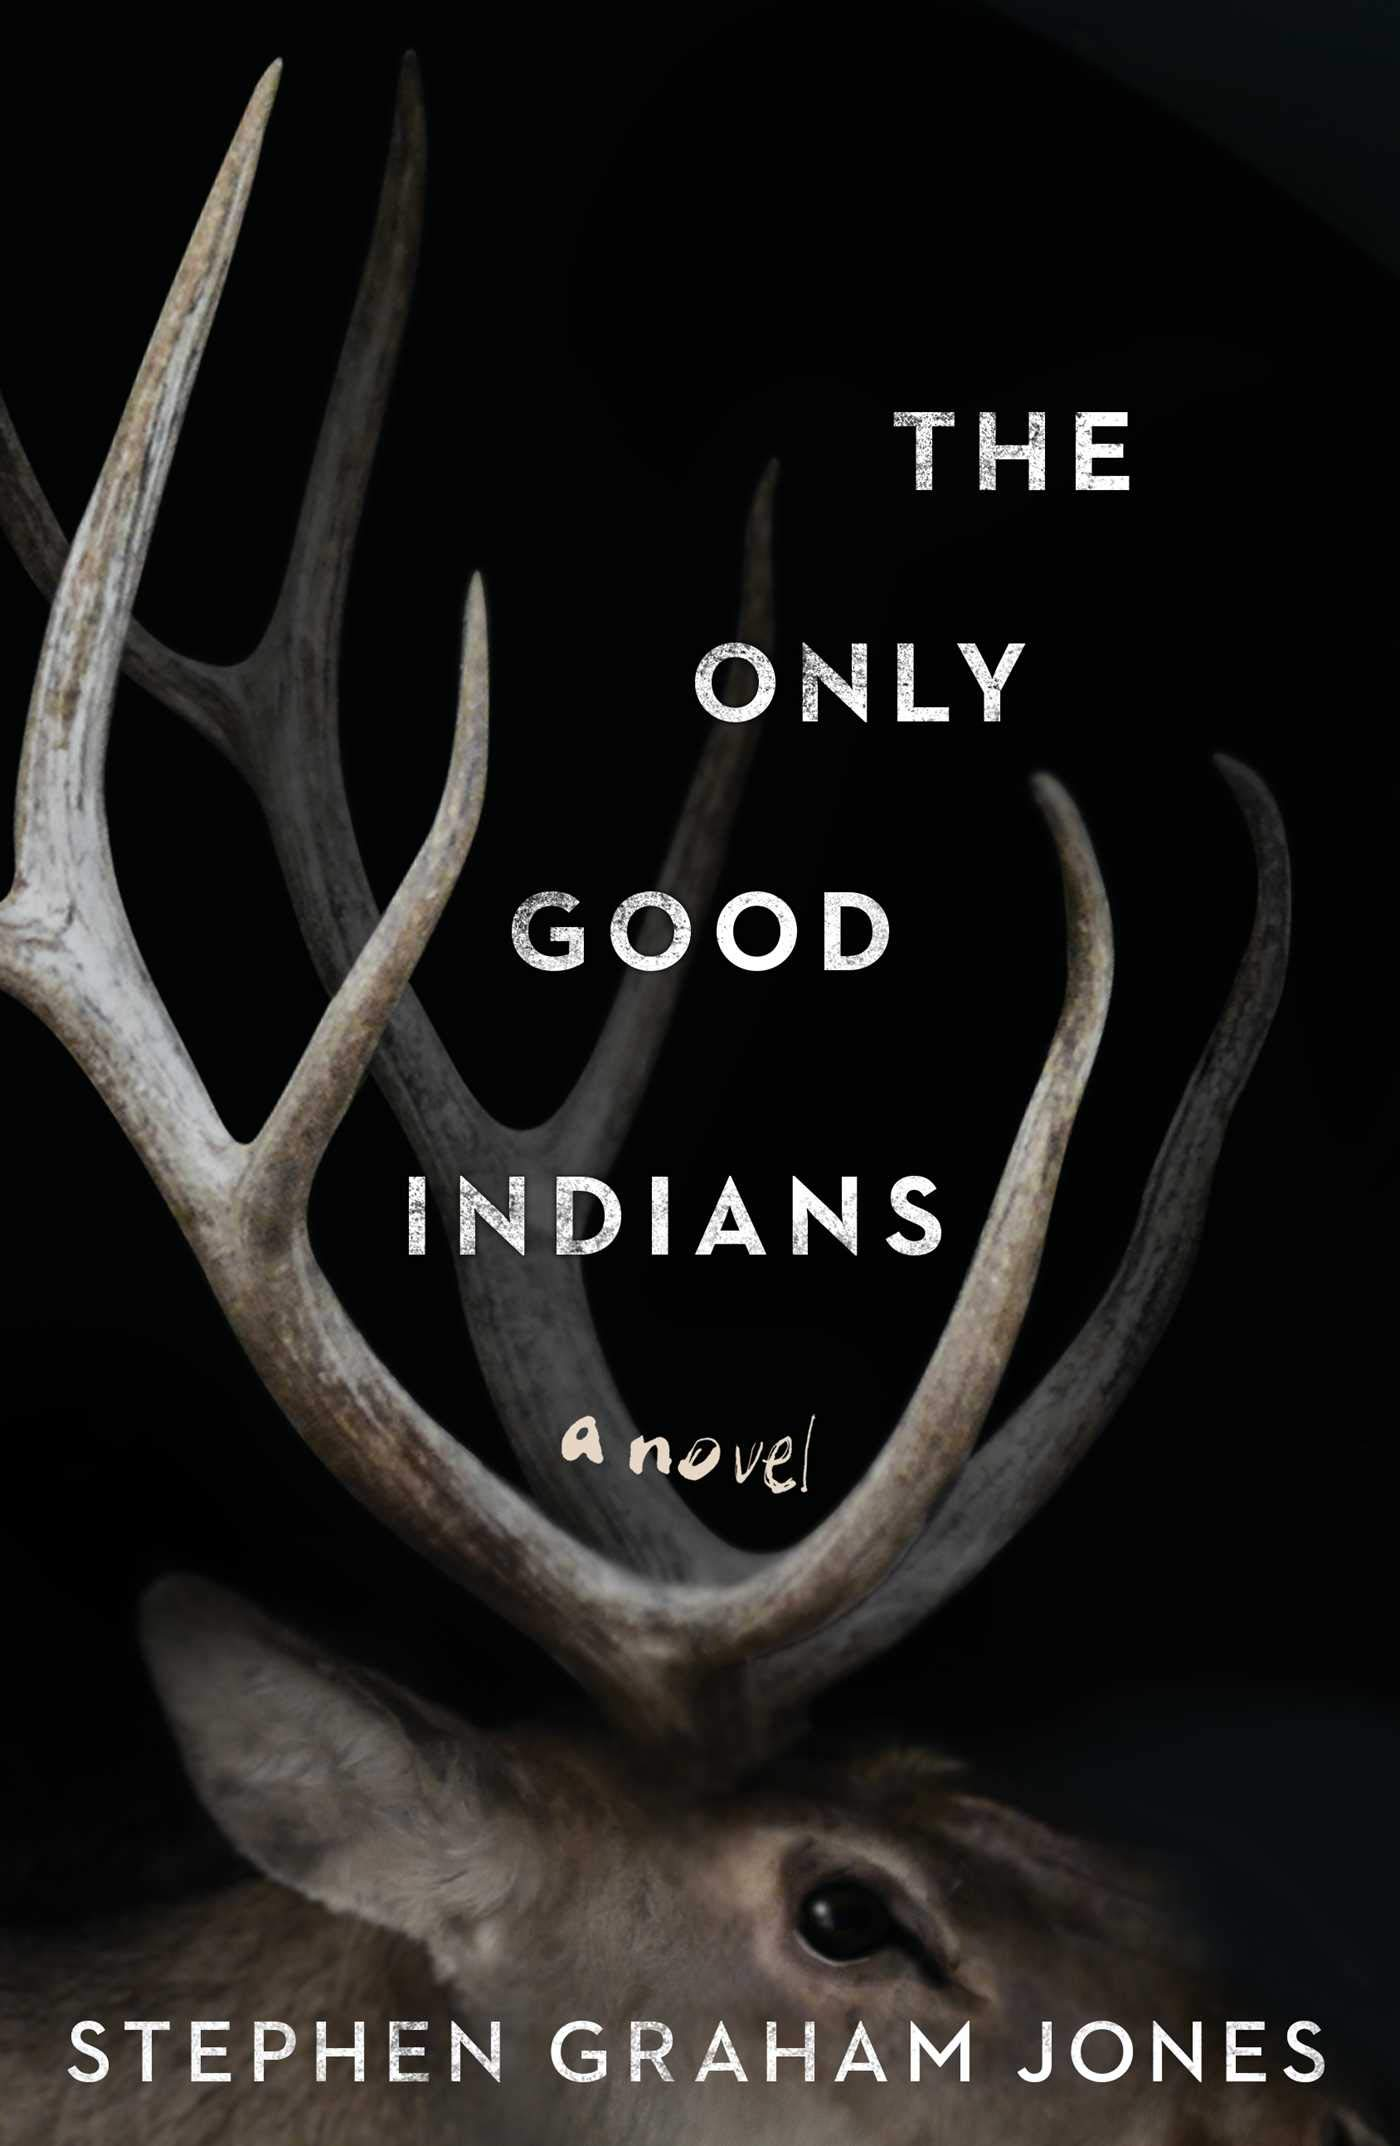 The Only Good Indians by Stephen Graham Jones - Image from Amazon.com